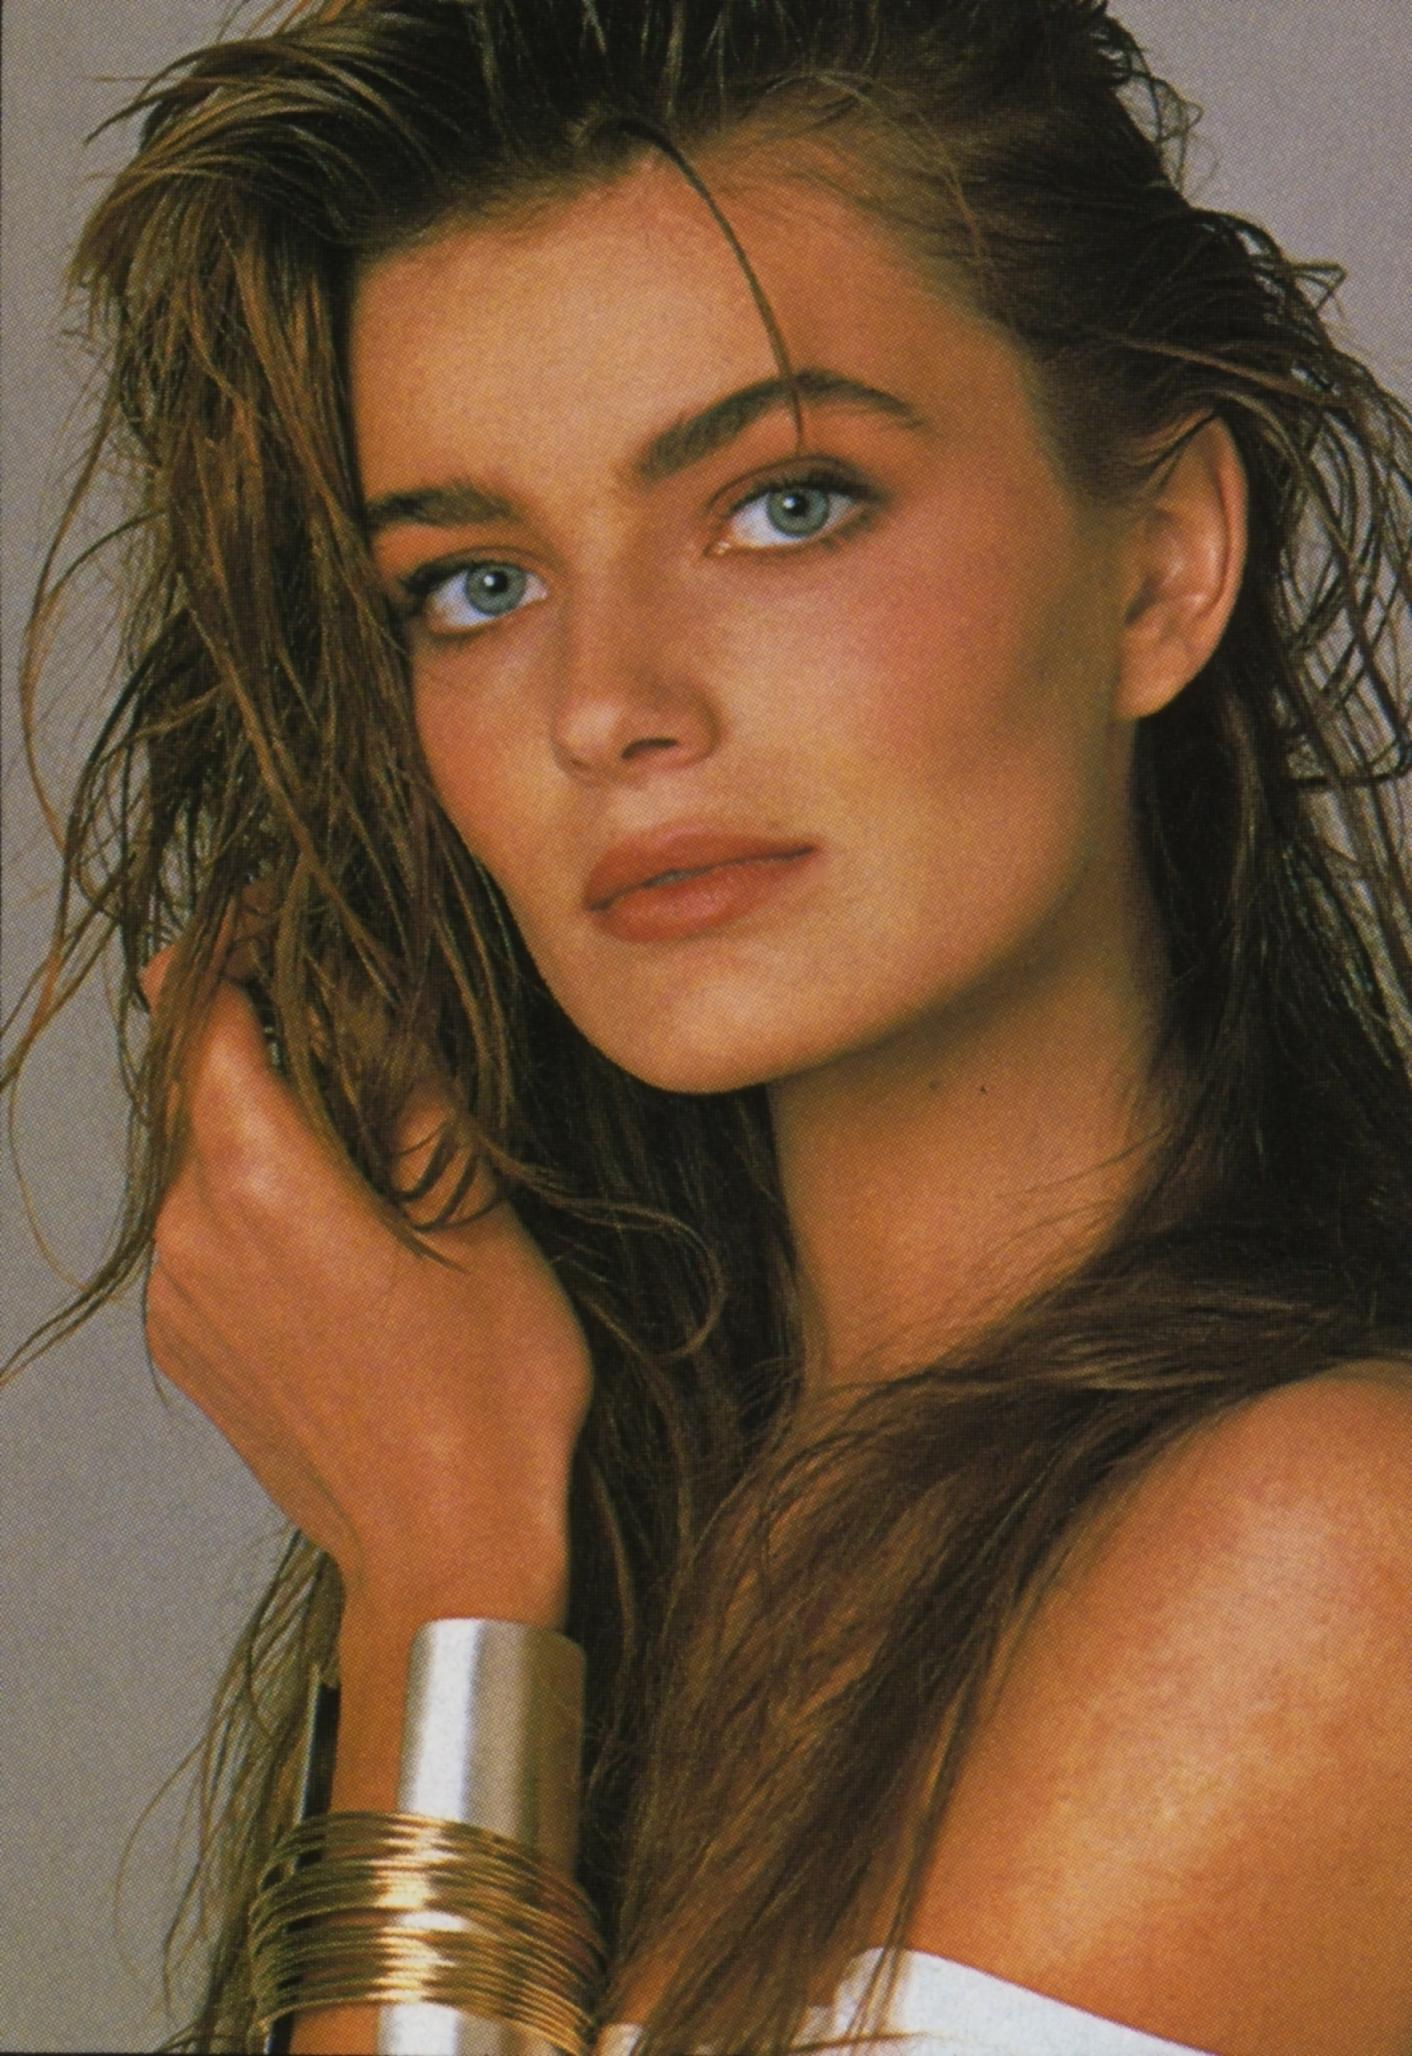 Who Was The Hottest Supermodel From The 80's? (facially